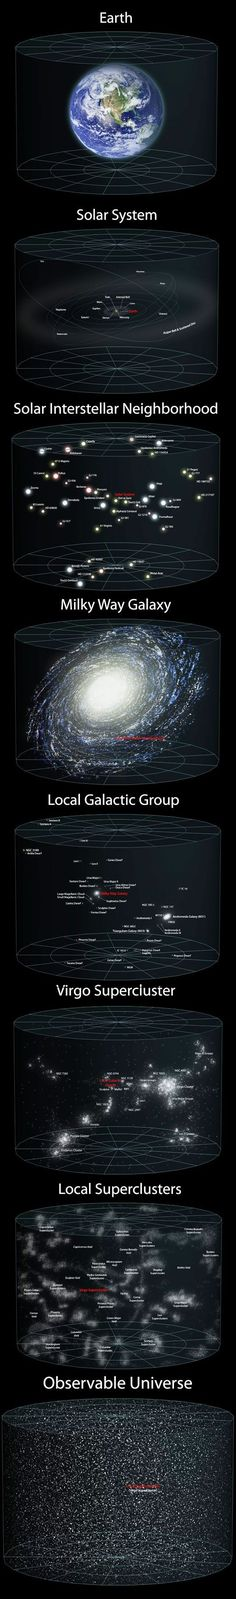 When it's time for a little perspective... Just remember, you are an infinitesimal speck in the Grand Order of the Universe....